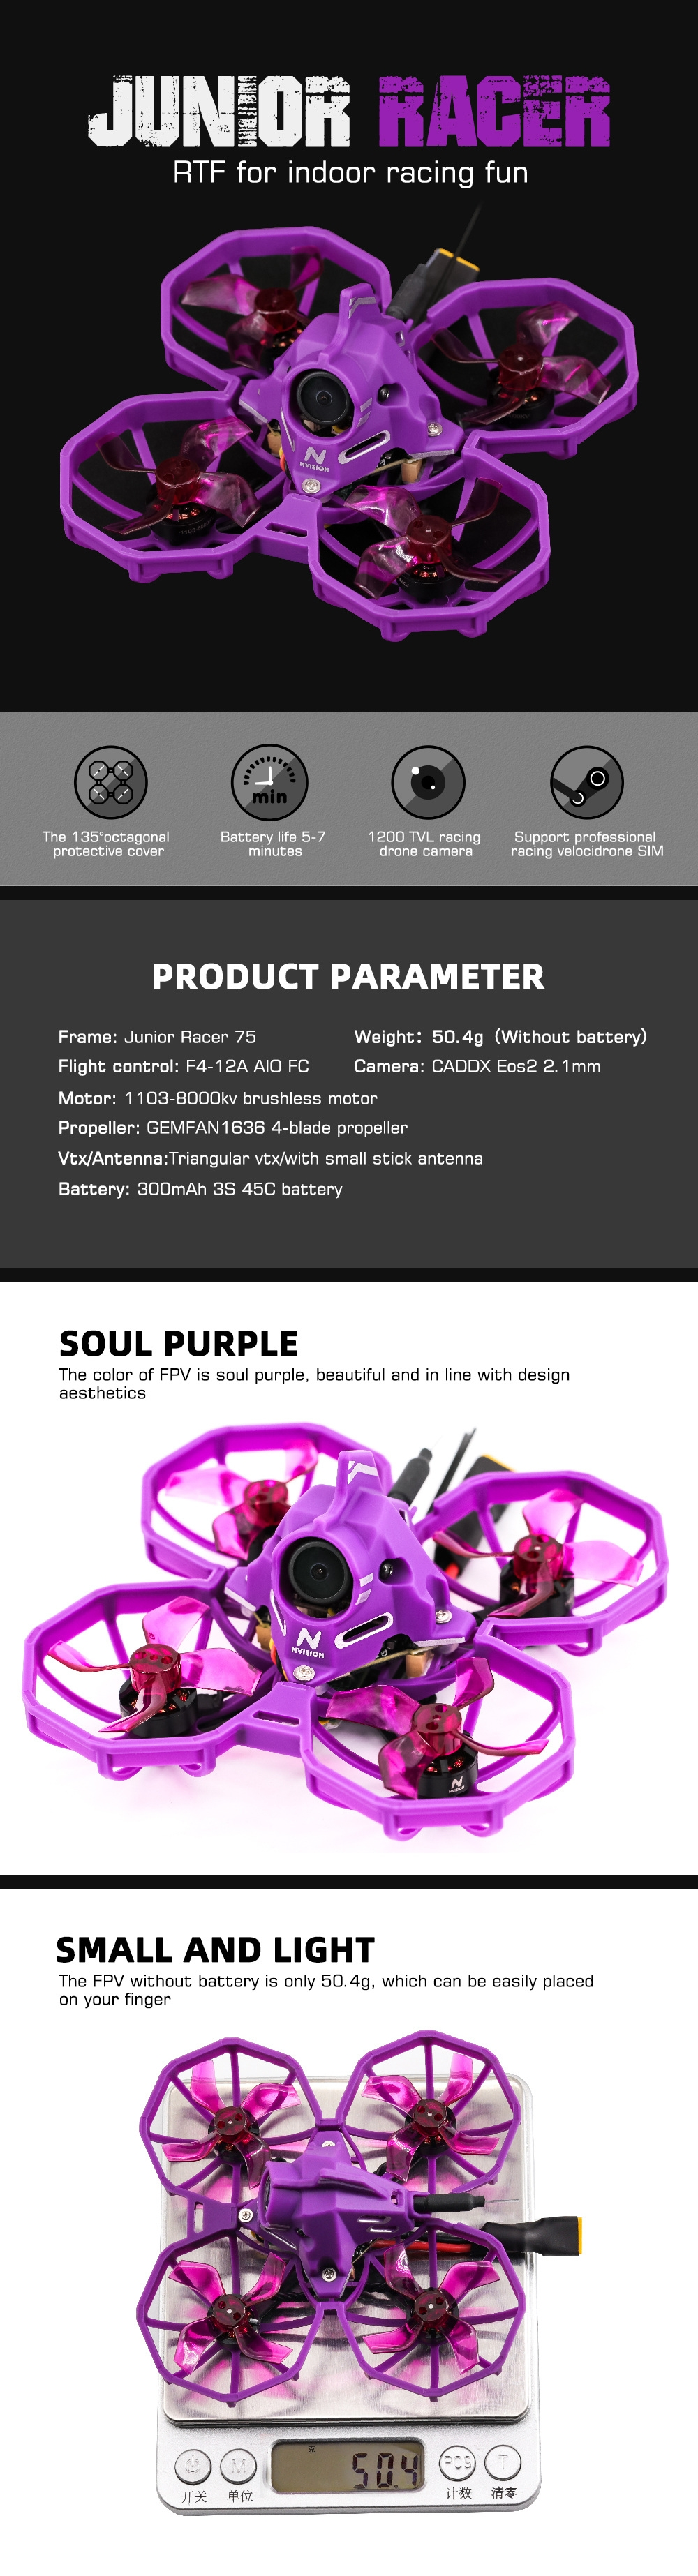 25% OFF for NVision Junior Racer75 75mm F4 AIO 12A ESC 3S Whoop FPV Racing Drone PNP w/ 1103 8000KV Motor Caddx Turbo Caddx Eos2 1200TVL Camera